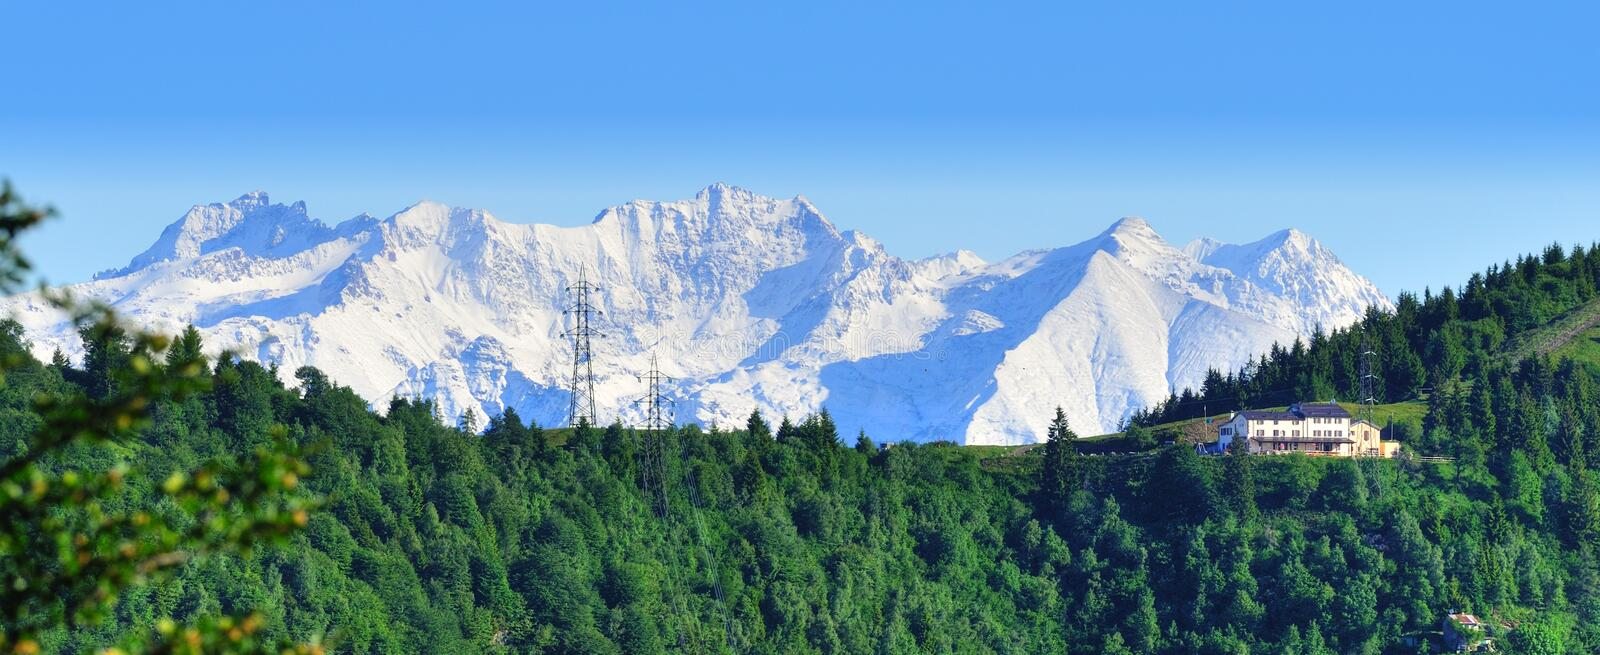 Mount Concarena seen from Guglielmo slopes royalty free stock images